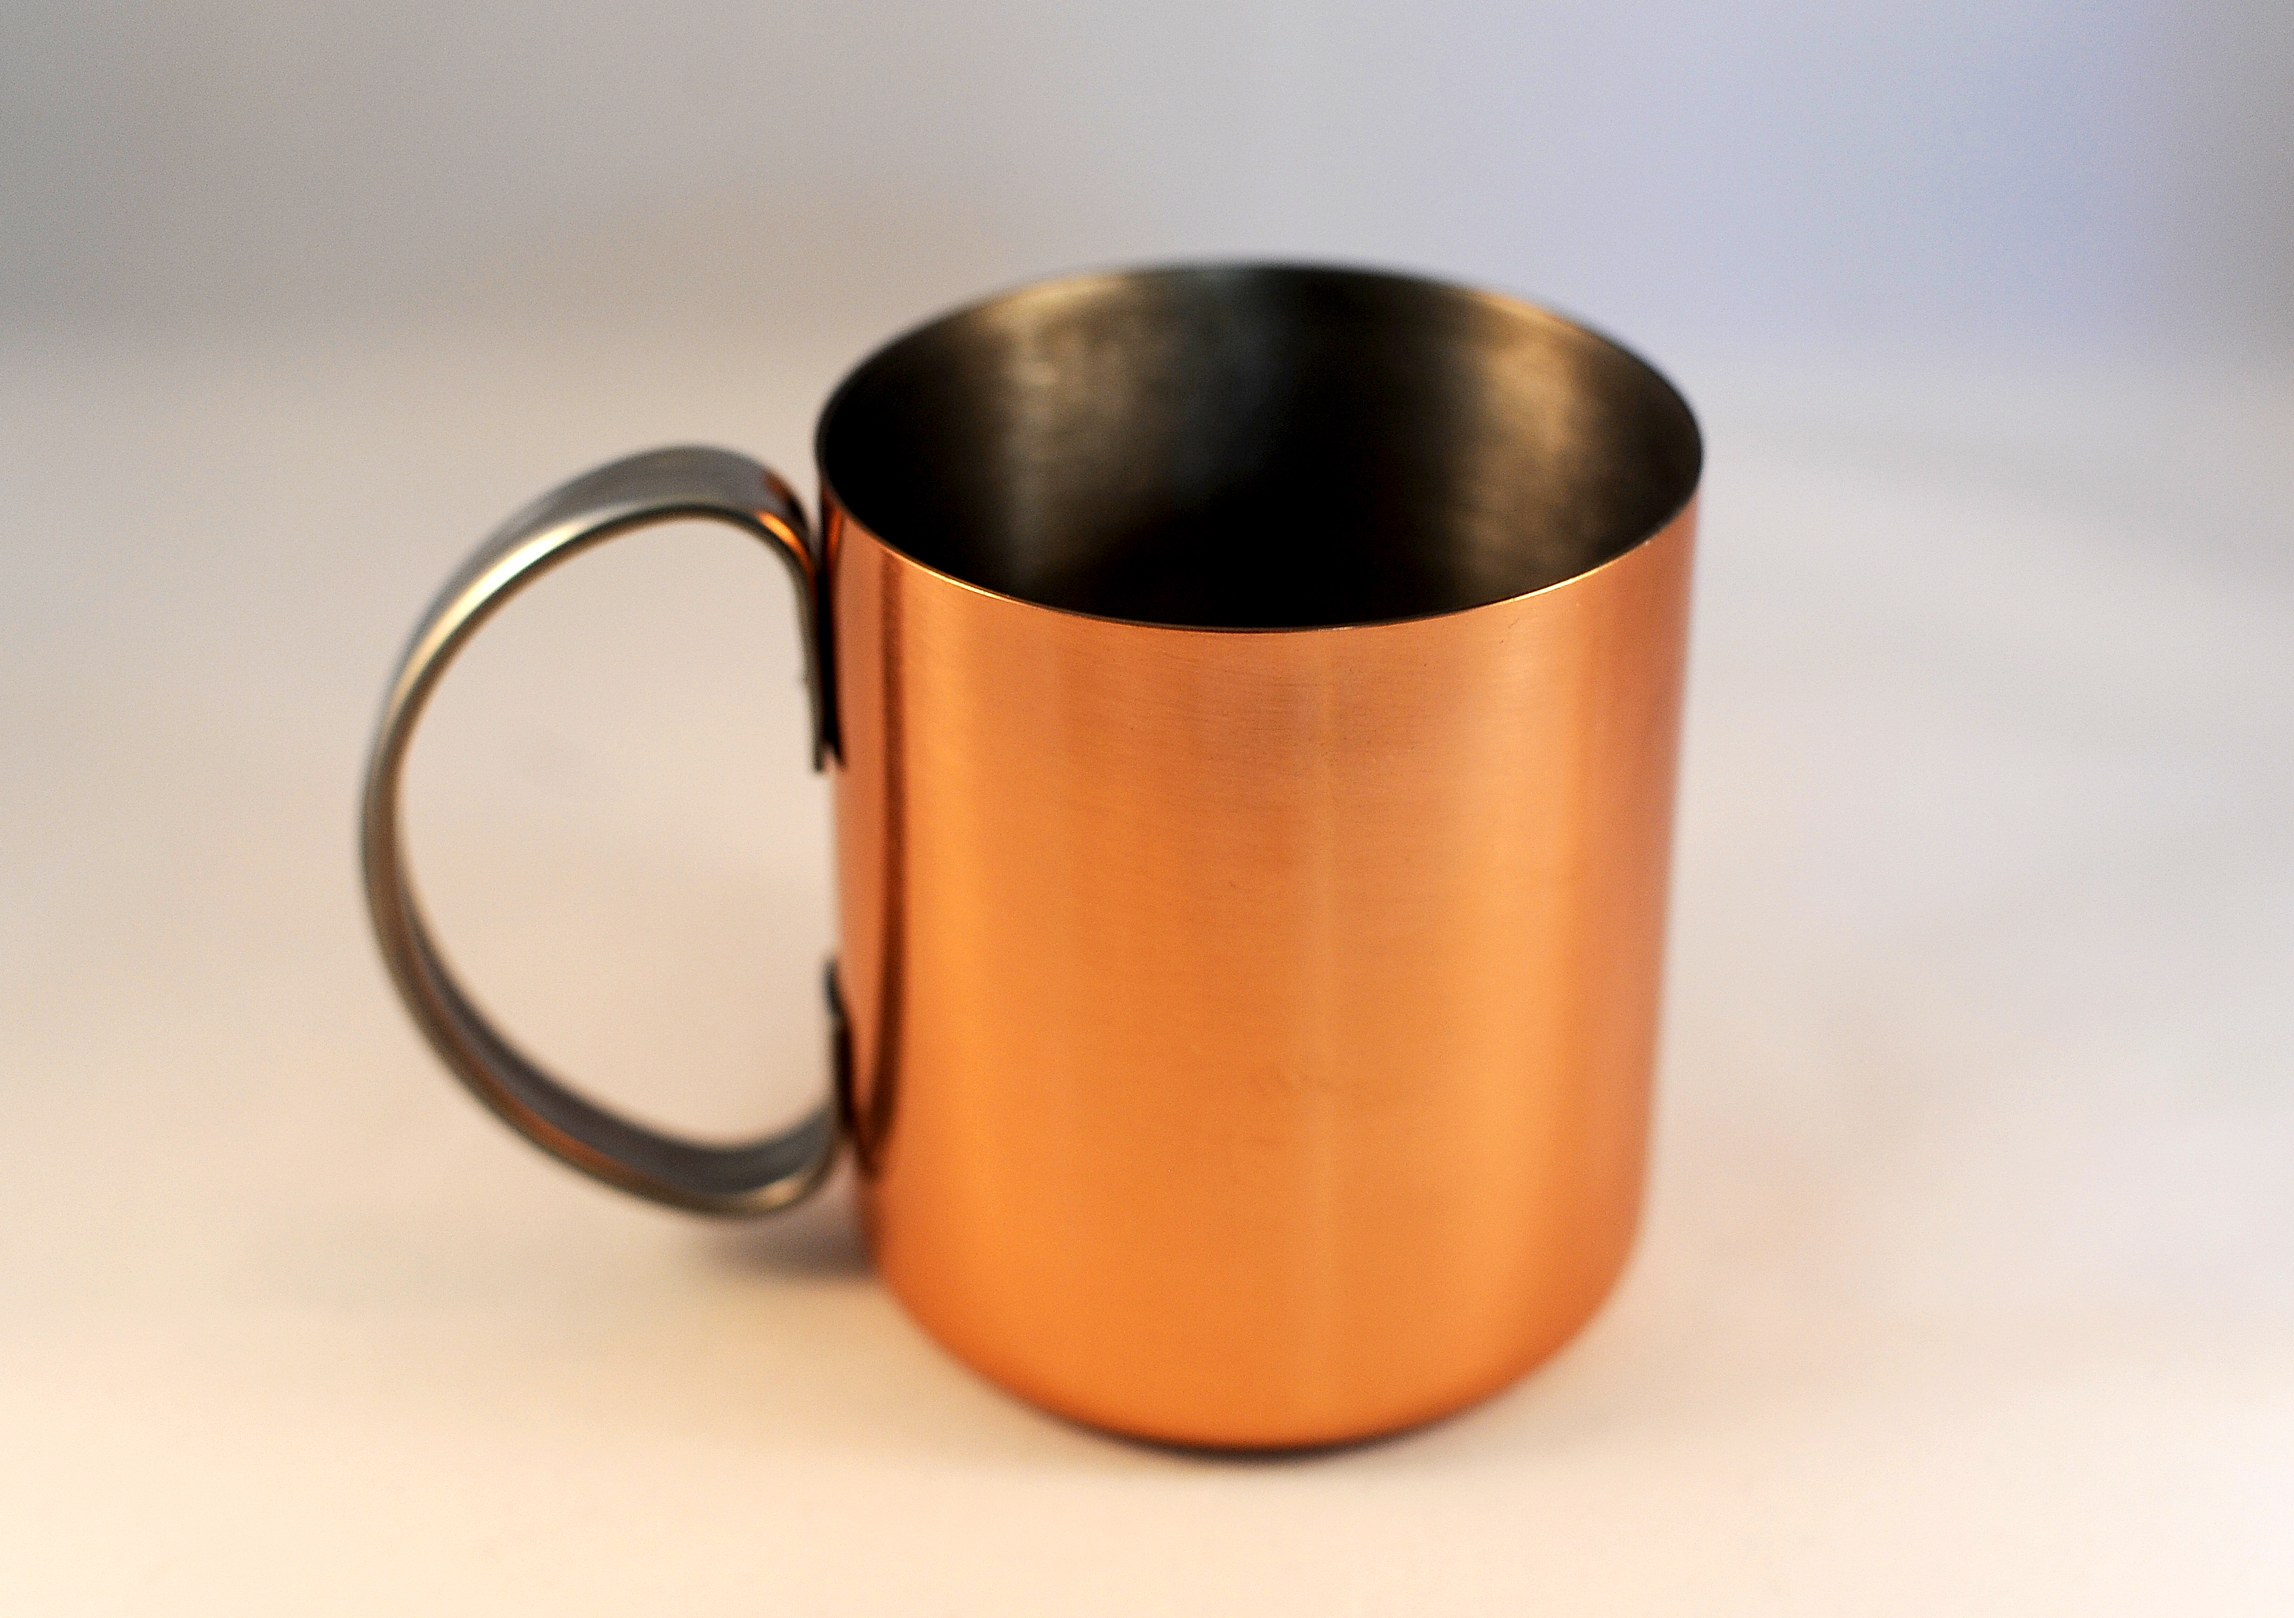 50 pack 12 oz stainless steel copper moscow mule mug